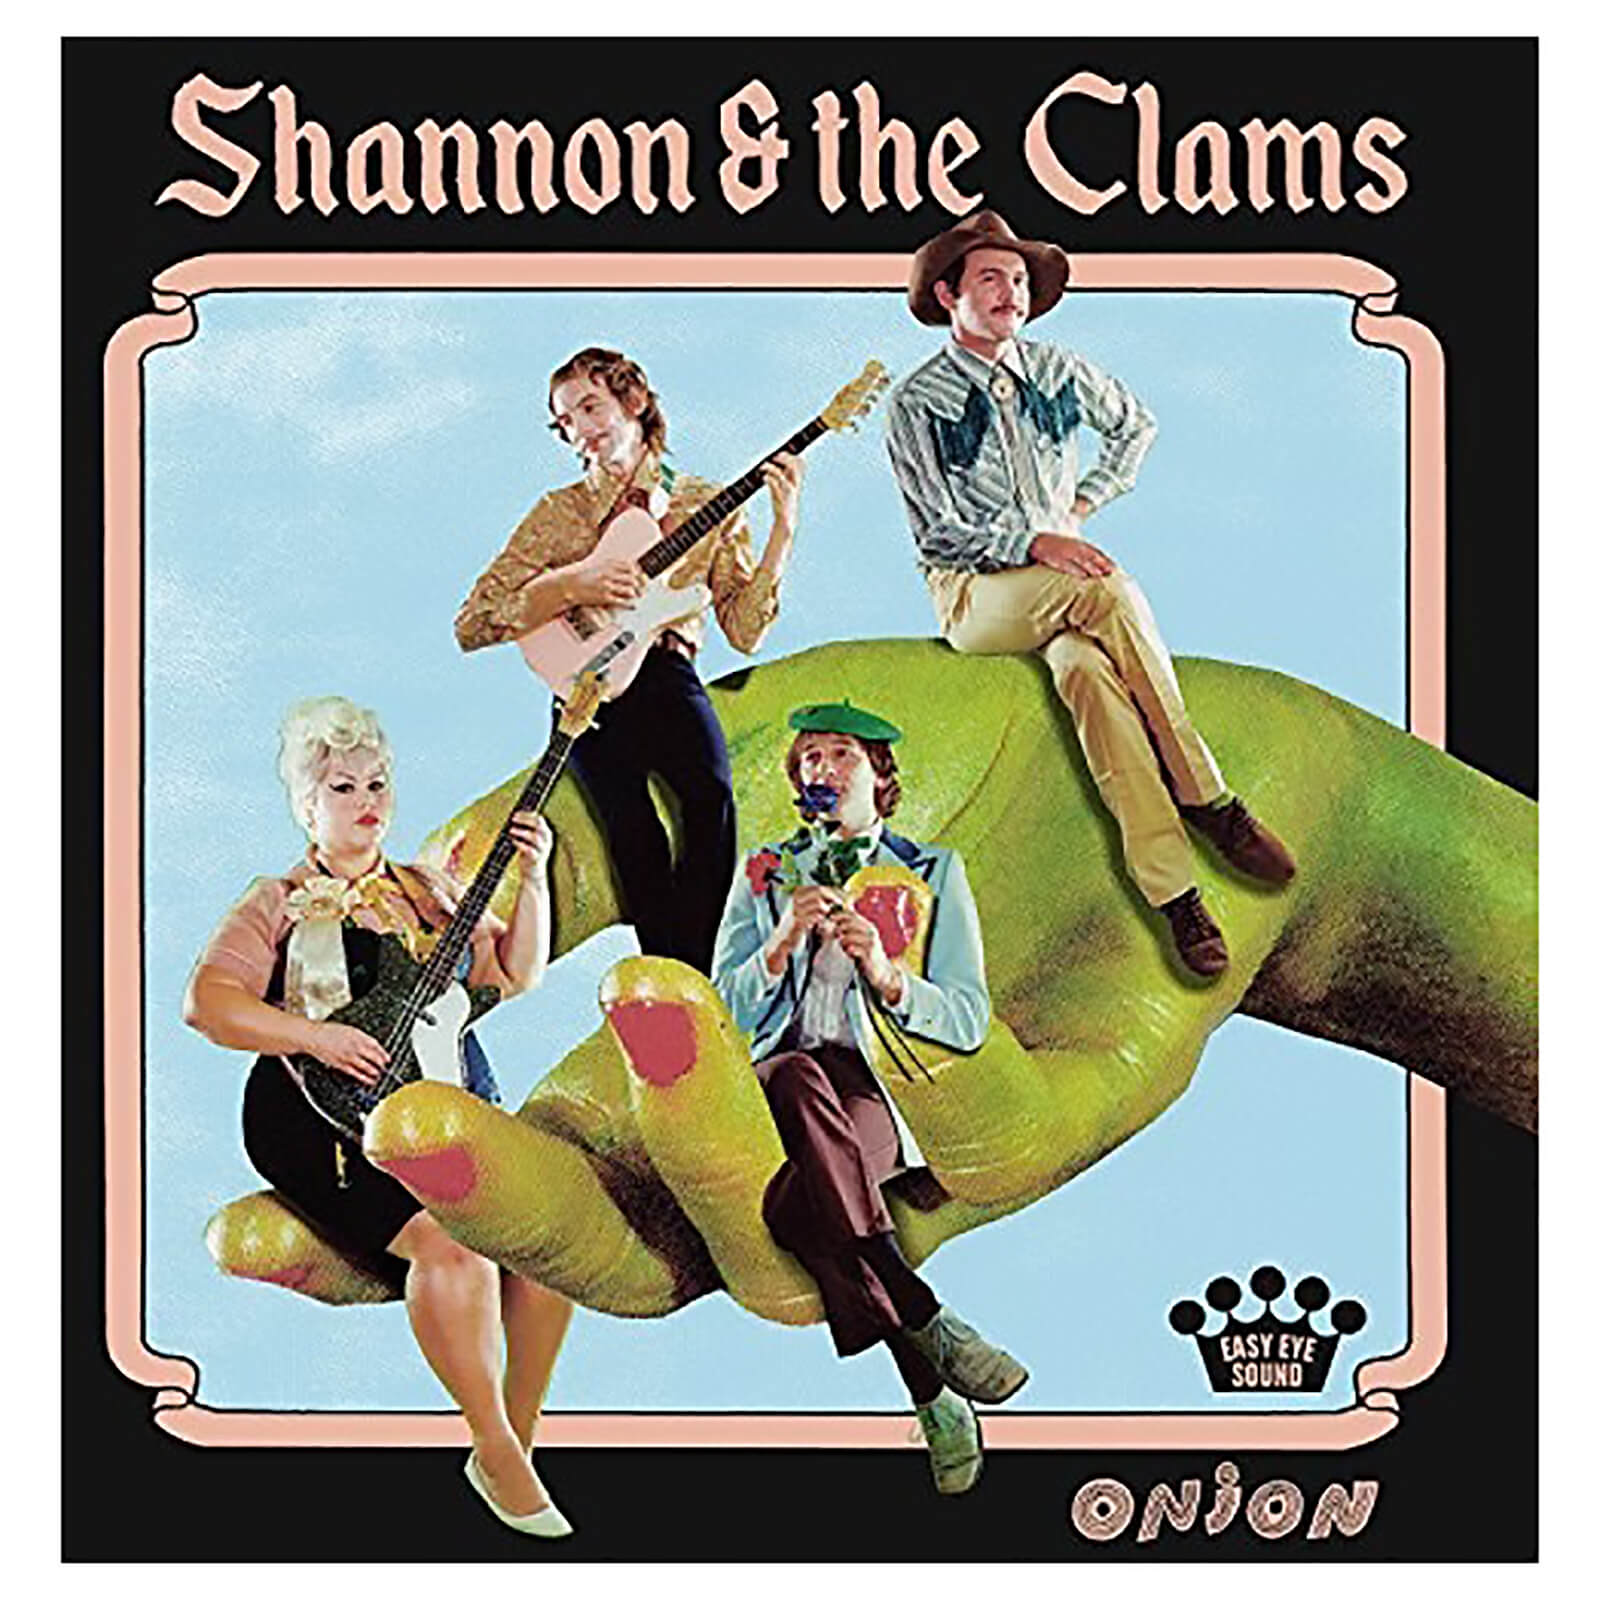 Shannon & Clams - Onion - Vinyl